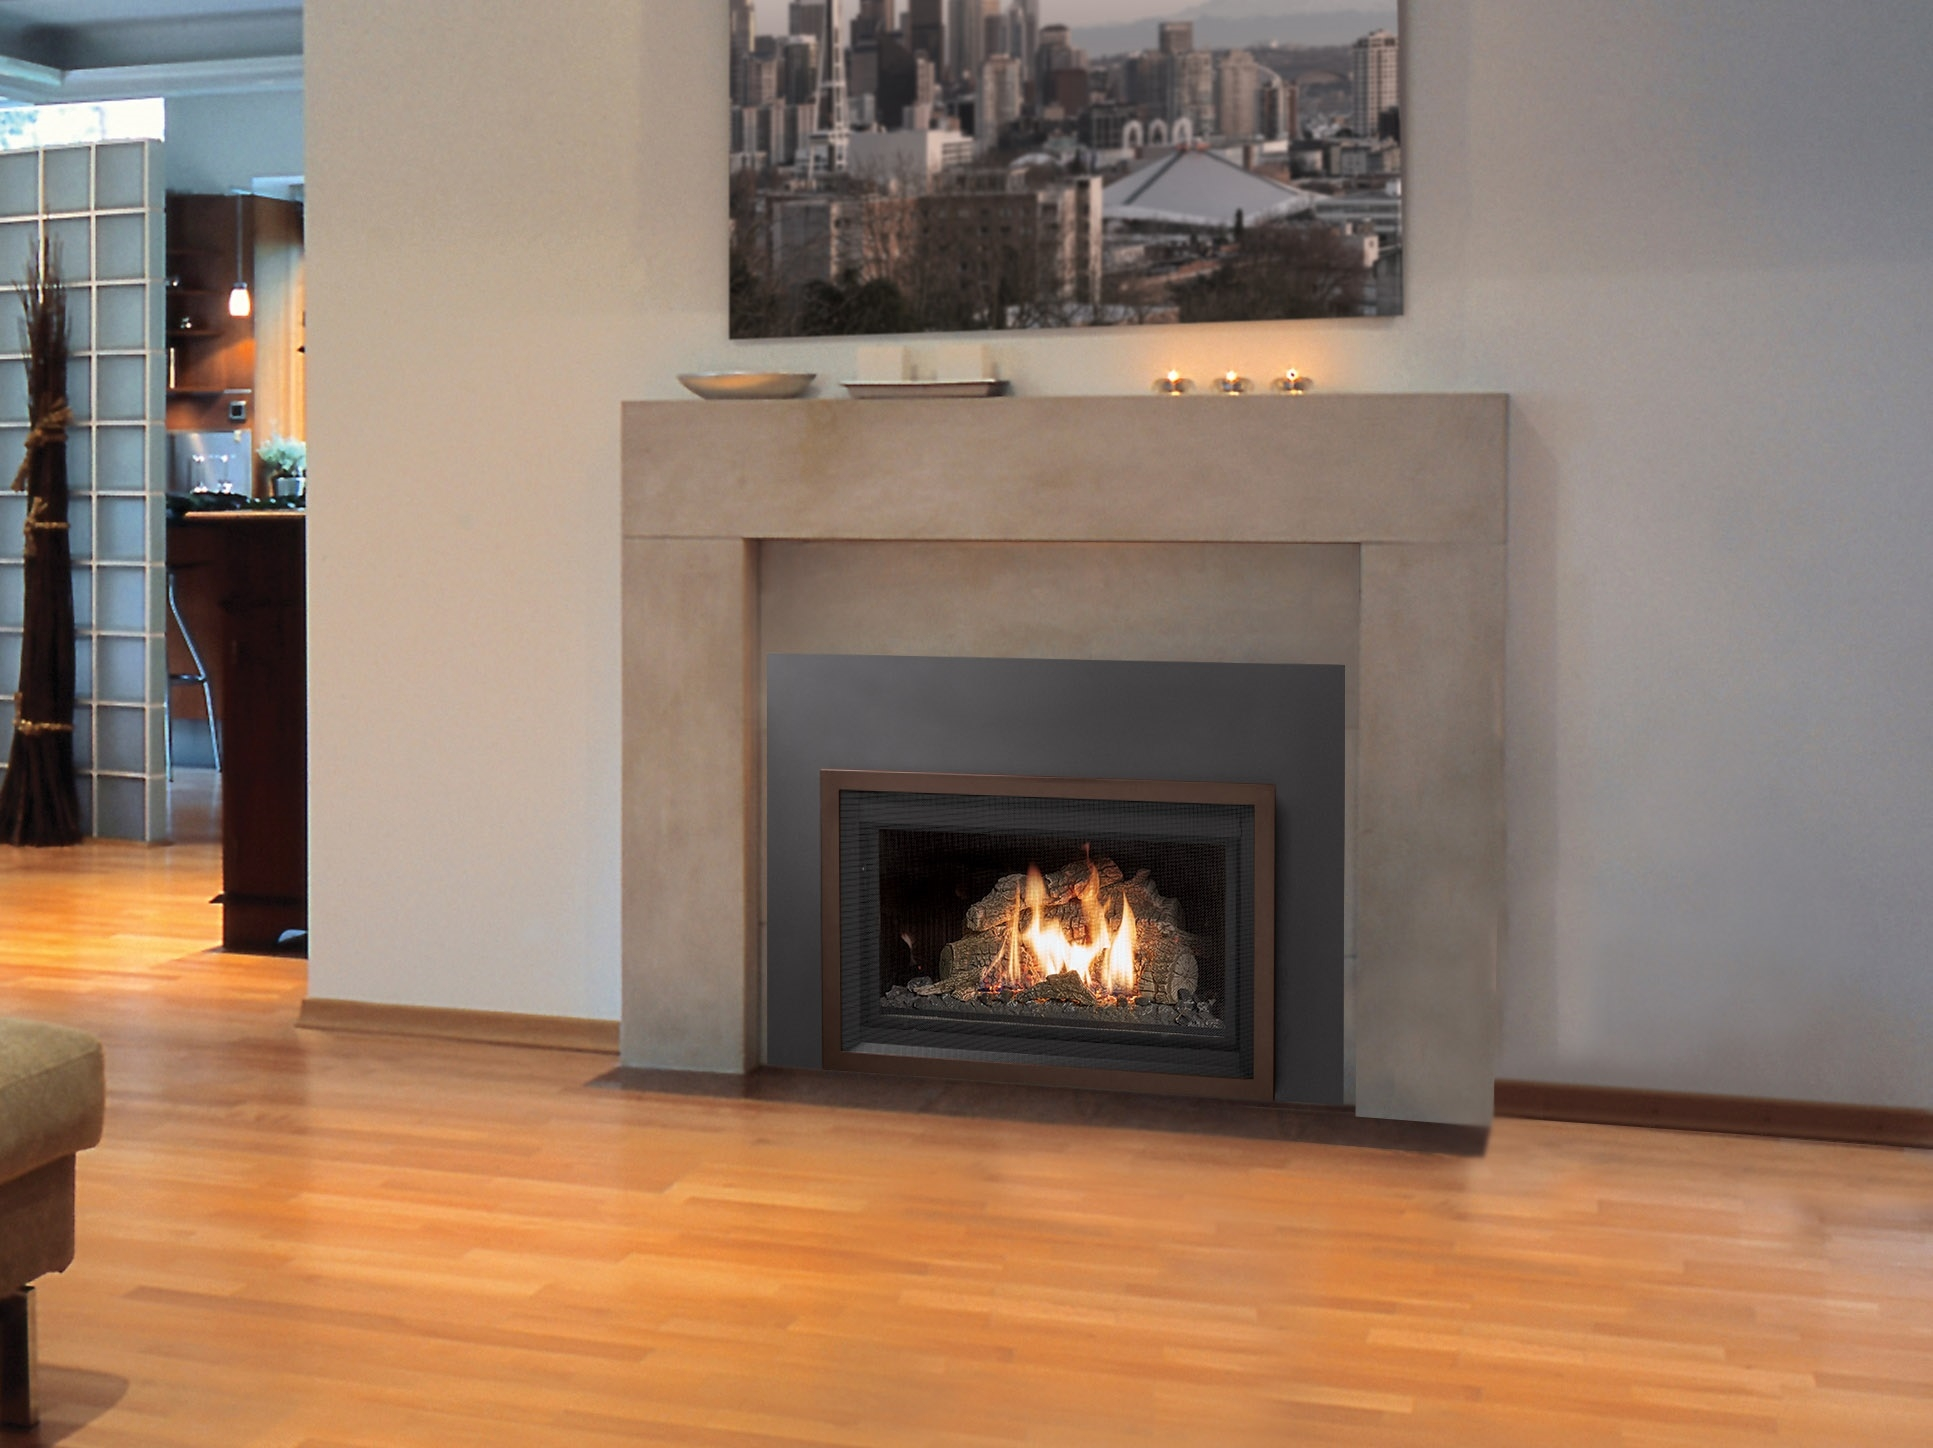 Miraculous 32 Dvs Rochester Fireplace Download Free Architecture Designs Grimeyleaguecom